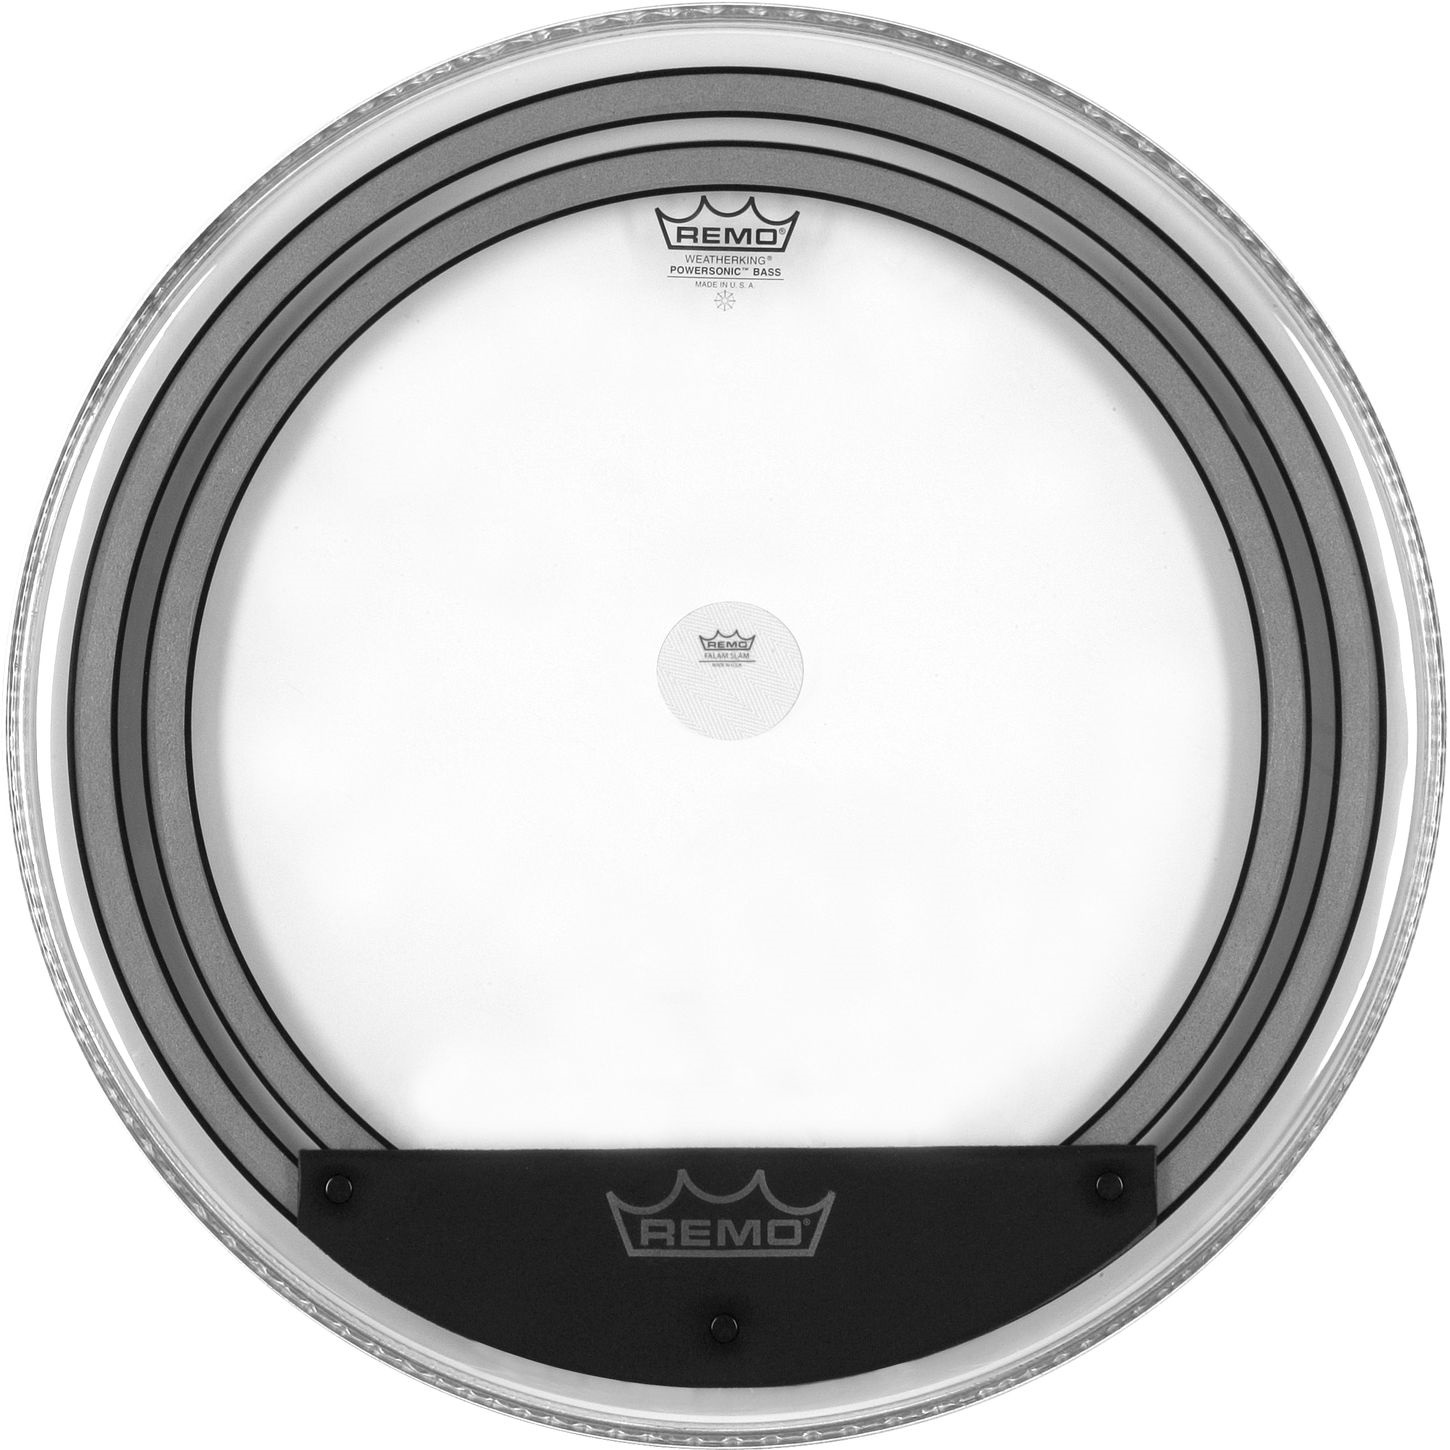 "Remo 18"" Power Sonic Coated"